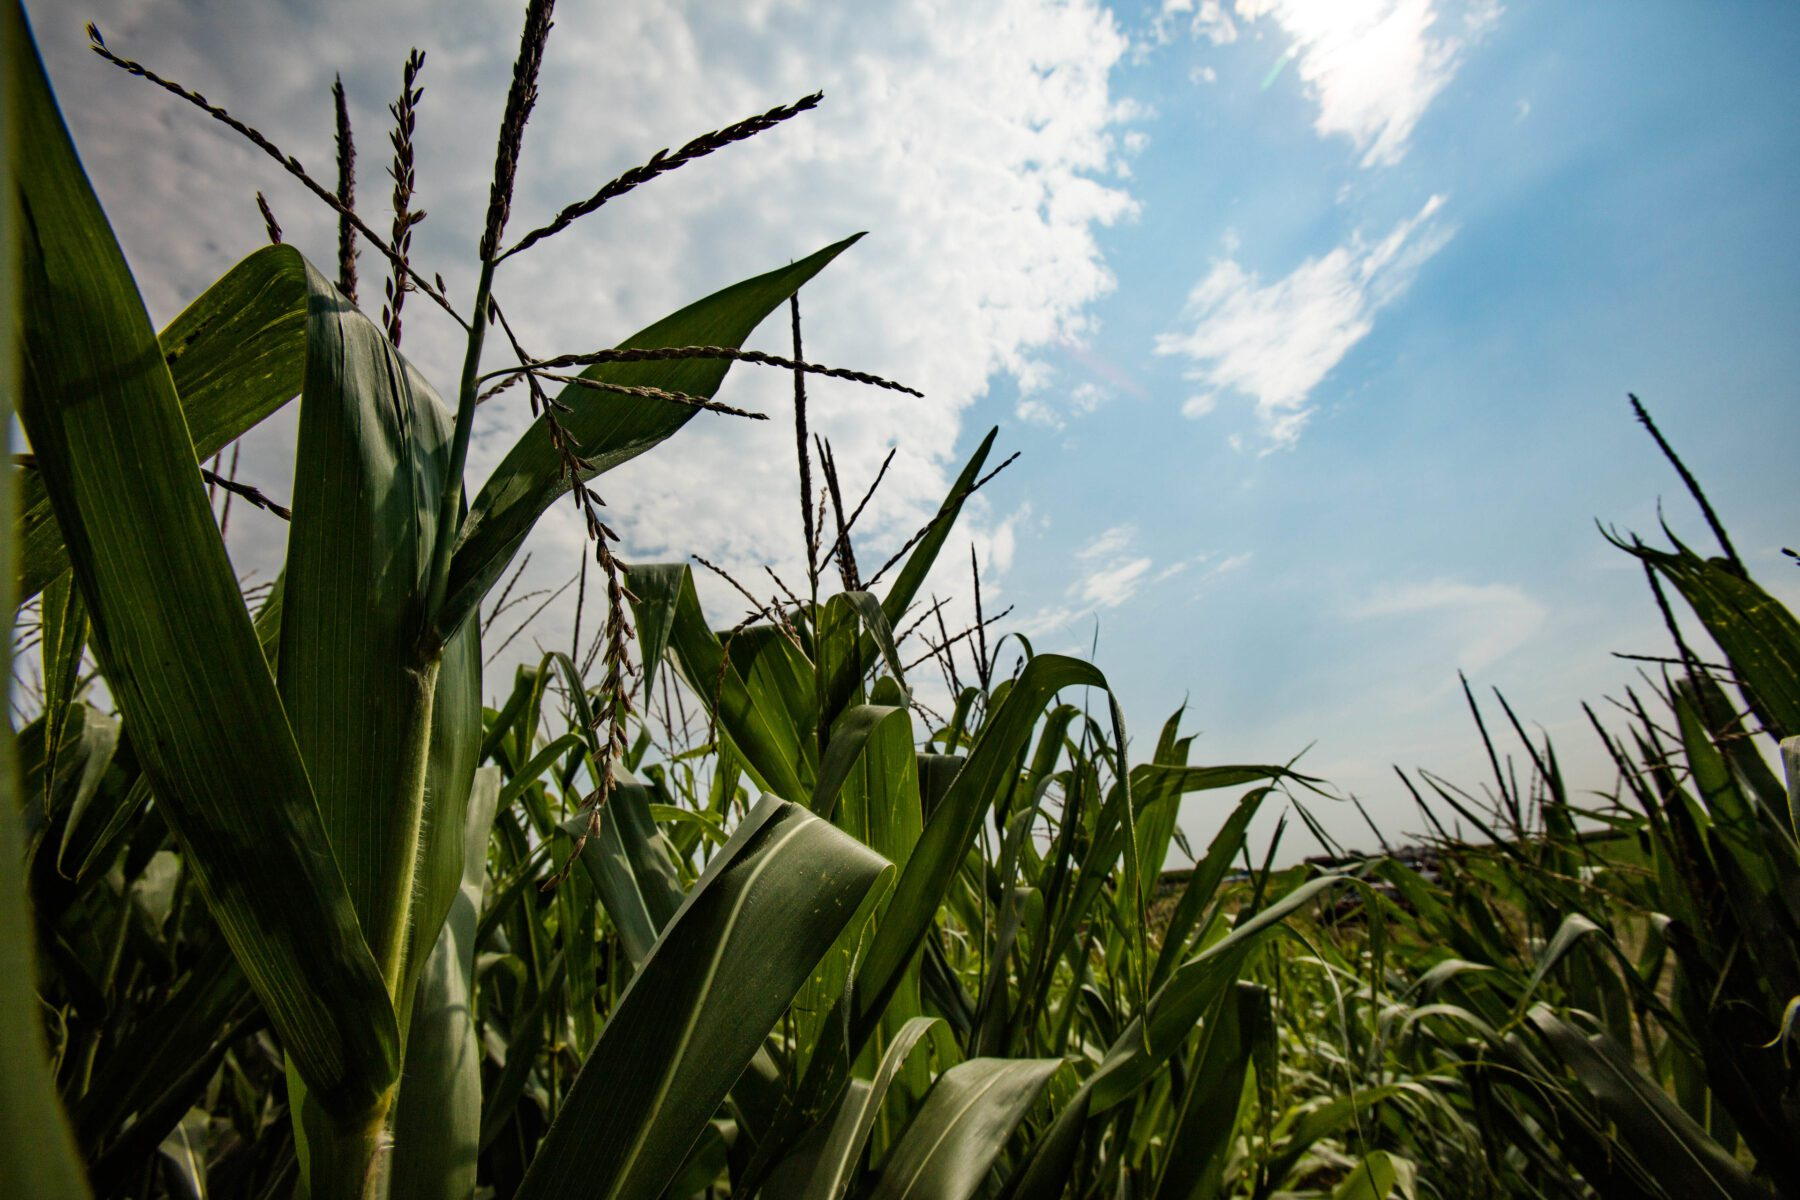 RIPE researchers have shown that by treating photosynthesis as a dynamic process, C4 plants like corn could improve their reaction to changes in light, improving overall yield. Image by Brian Stauffer?